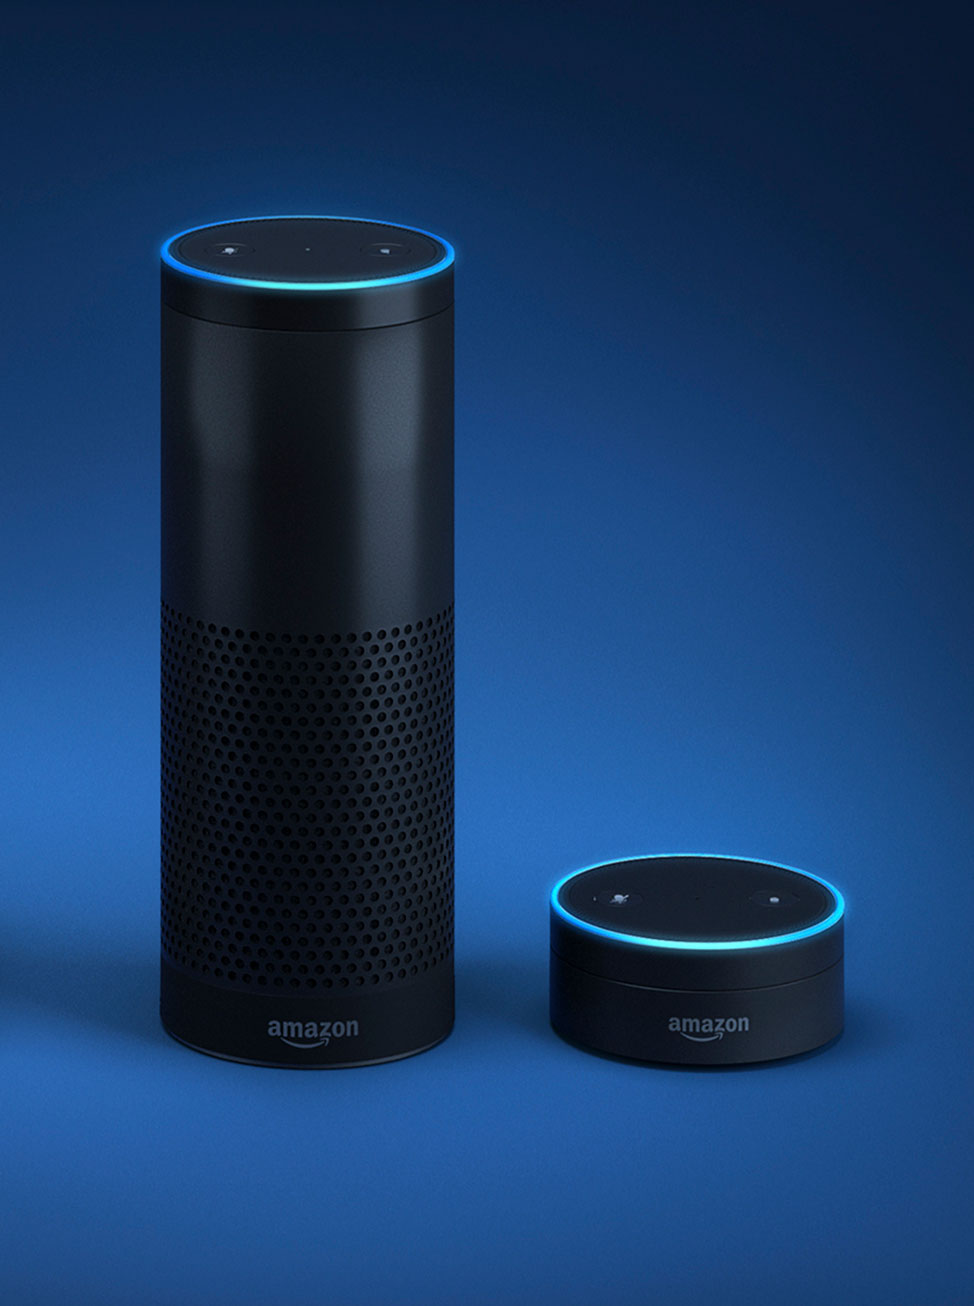 Amazon Echo Plus, and Amazon Echo Dot smart speakers